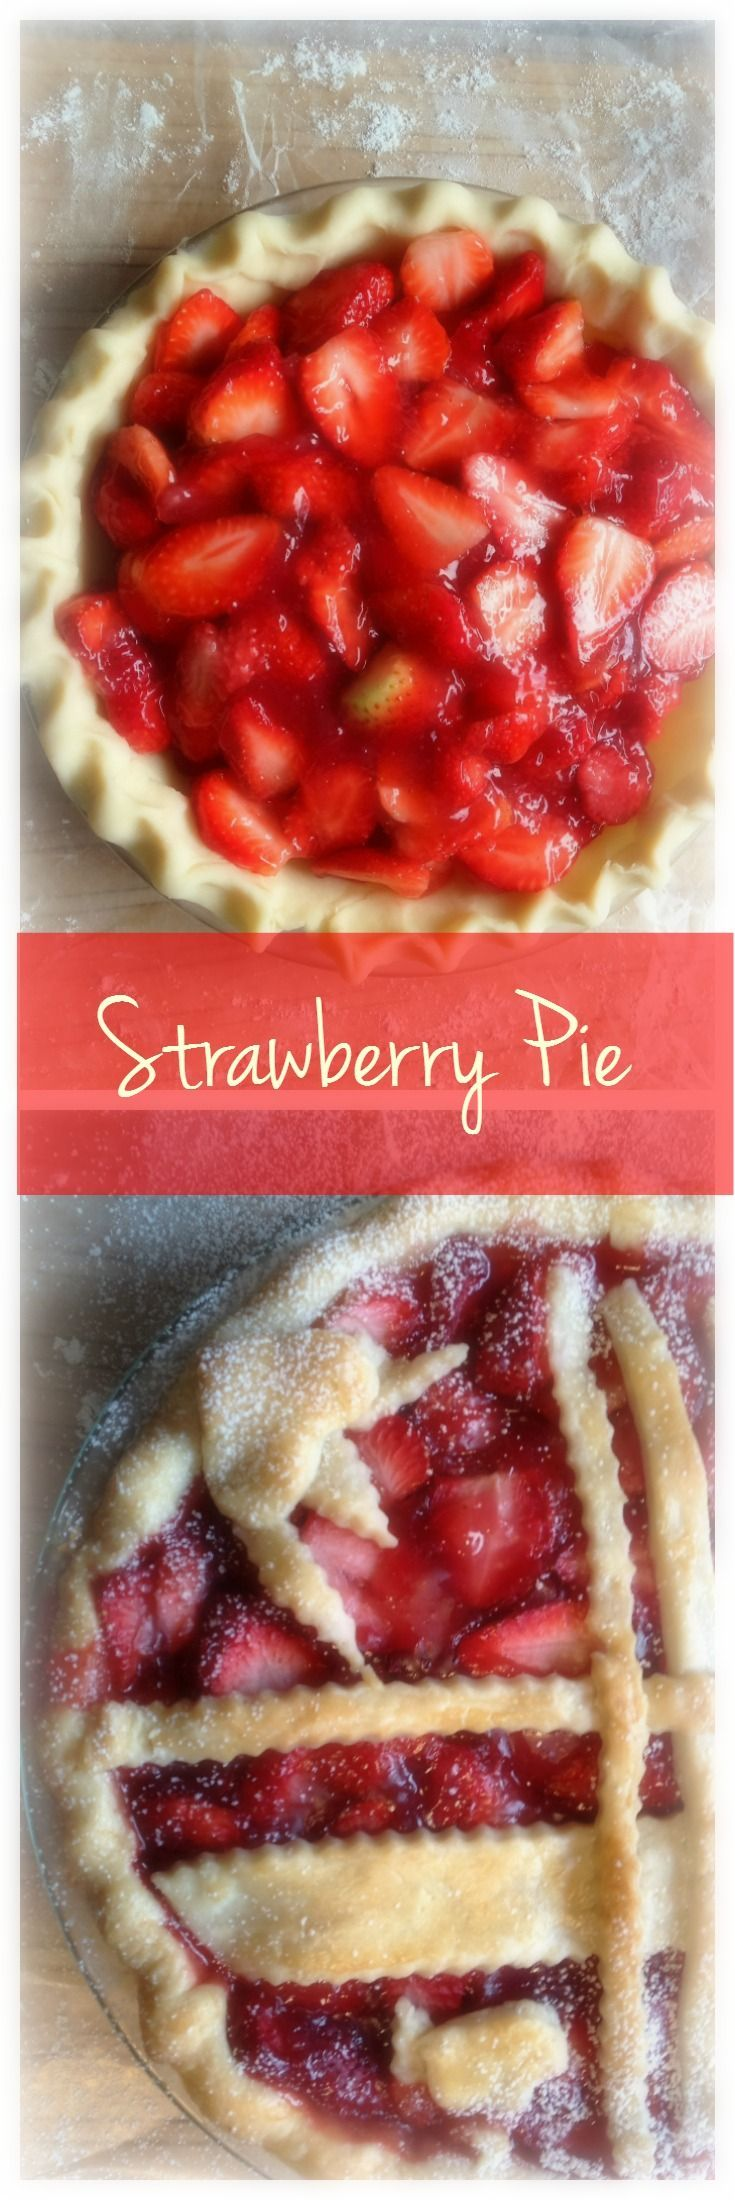 Strawberry Pie, Maple Syrup and Joie de Vivre!  I just won't eat fresh strawberries any more without maple syrup.  The sweet tang of freshly sliced berries dripping with the rich golden silky flavour of real maple syrup, well just try it.  I guarantee you will give it a second glance.